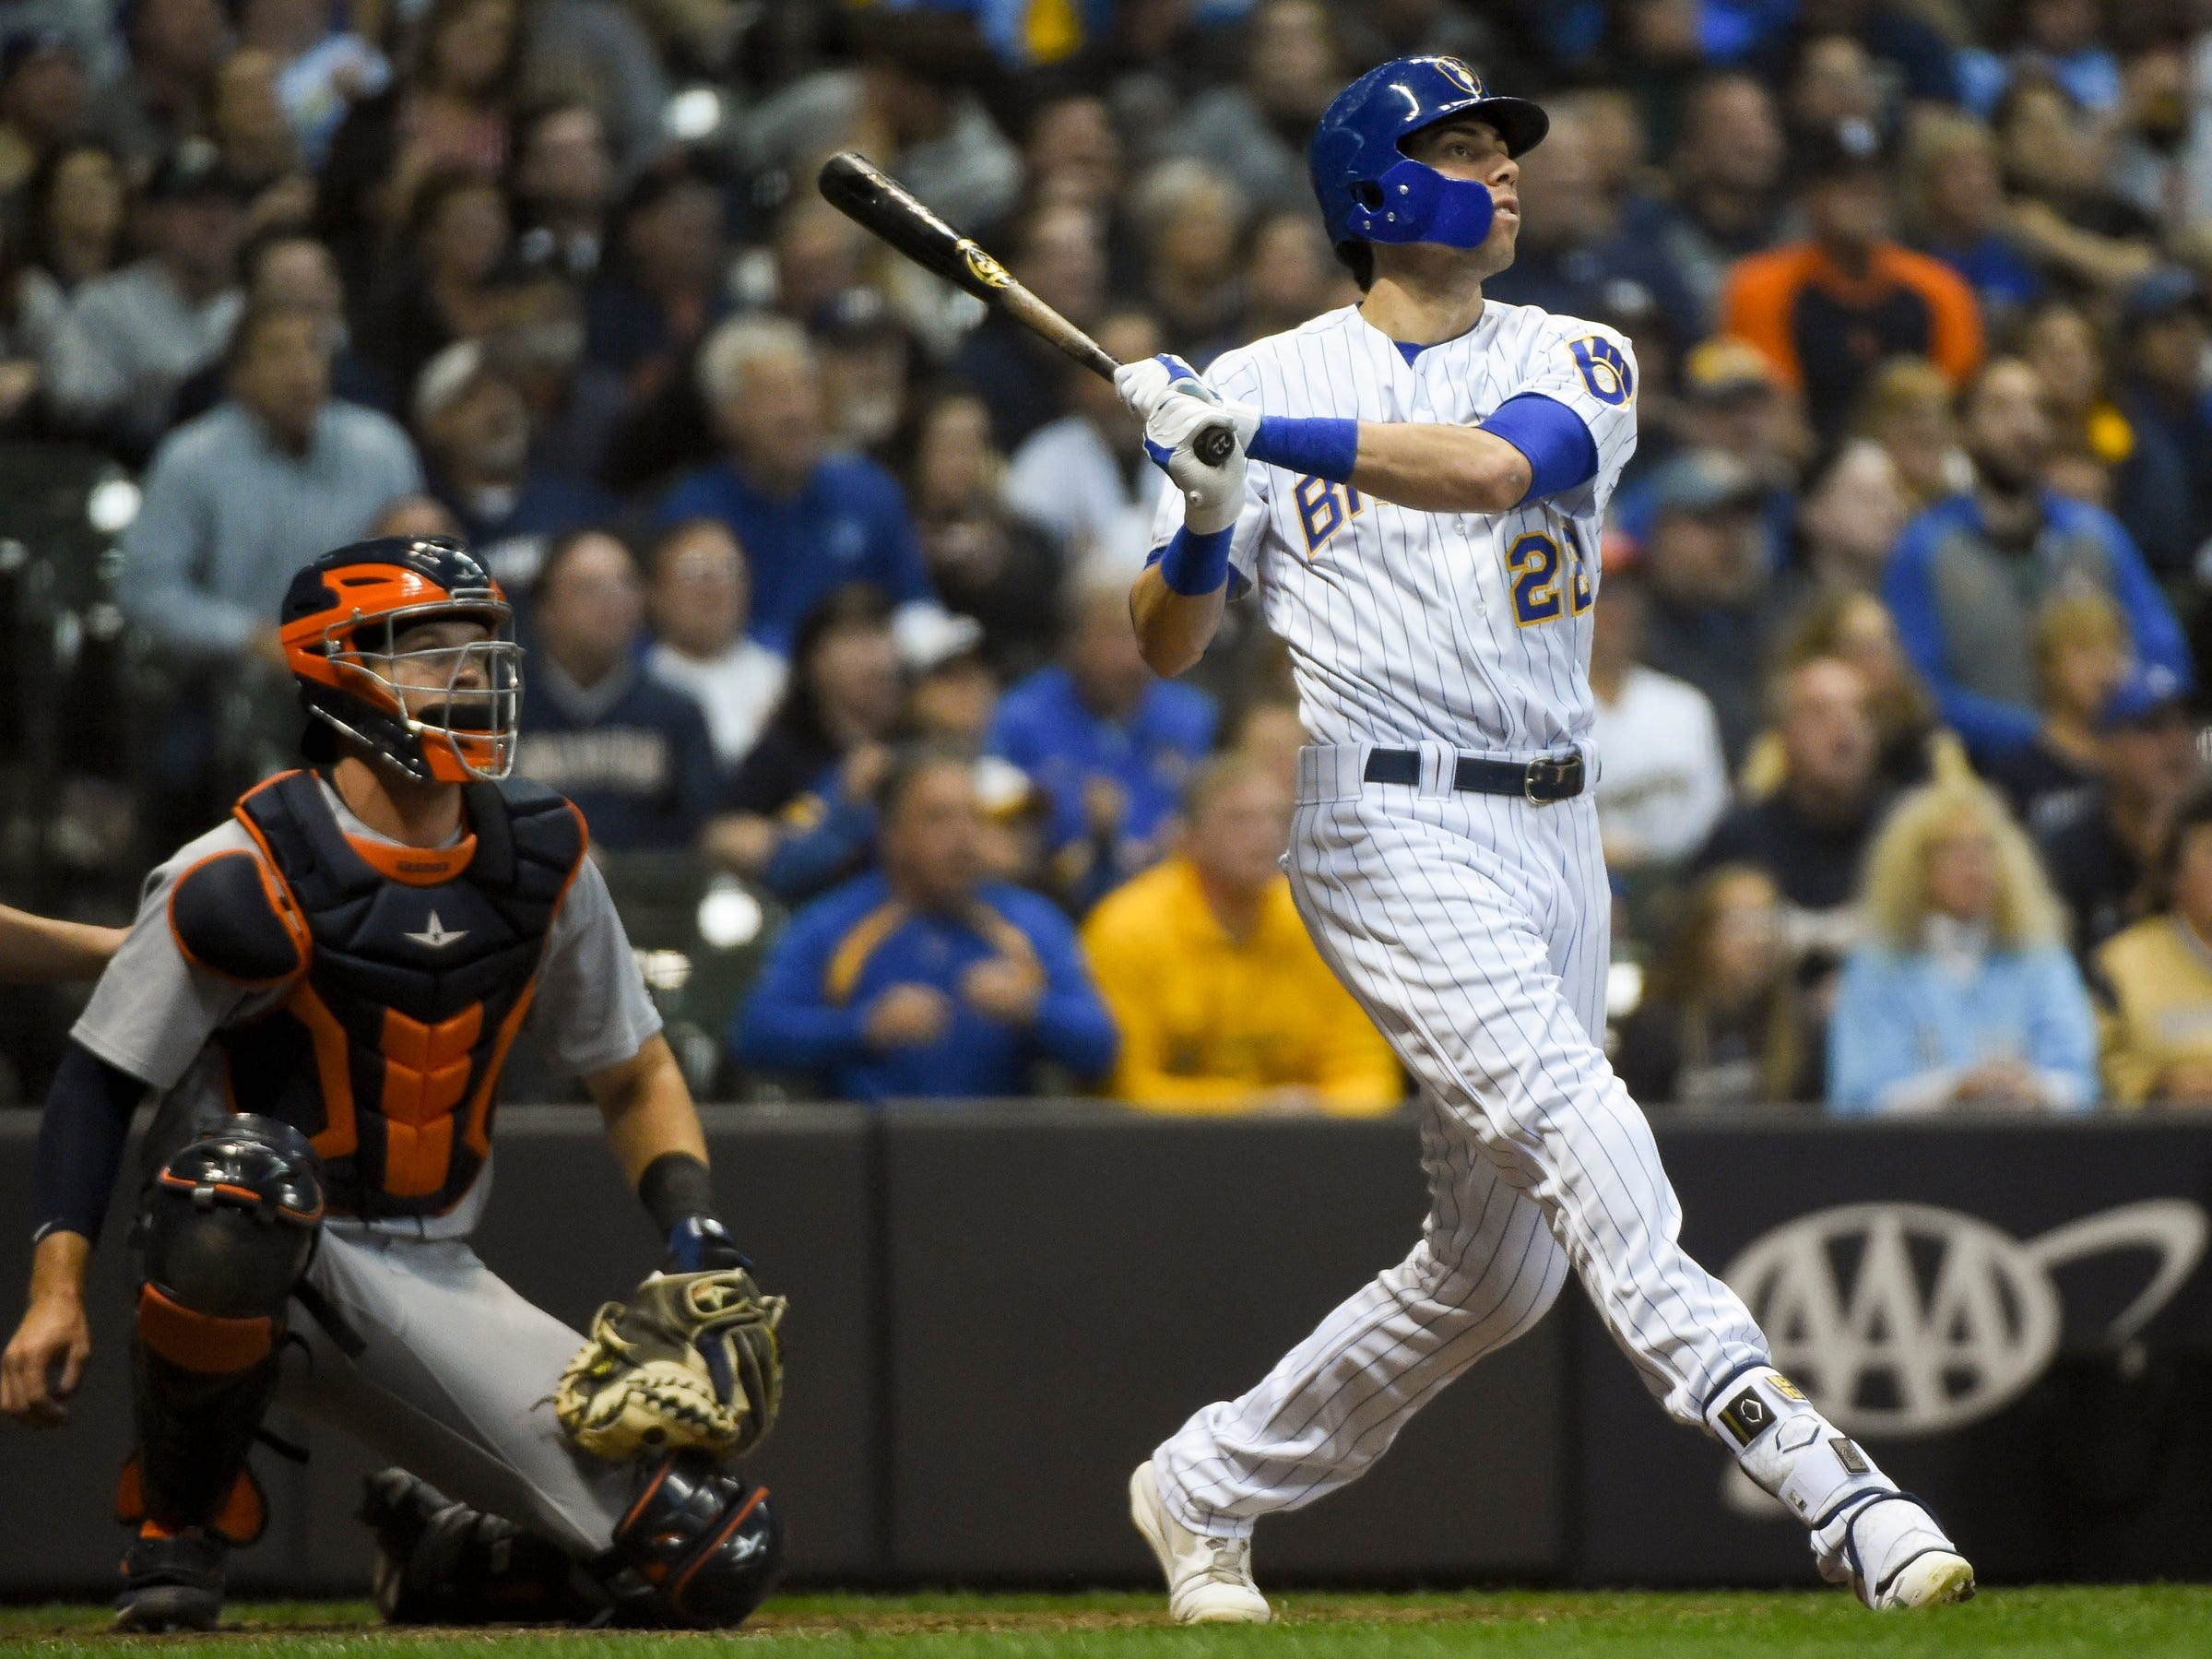 Milwaukee Brewers right fielder Christian Yelich hits a solo home run in the seventh inning, as Detroit Tigers catcher Grayson Greiner watches at Miller Park, Sept. 29, 2018 in Milwaukee.